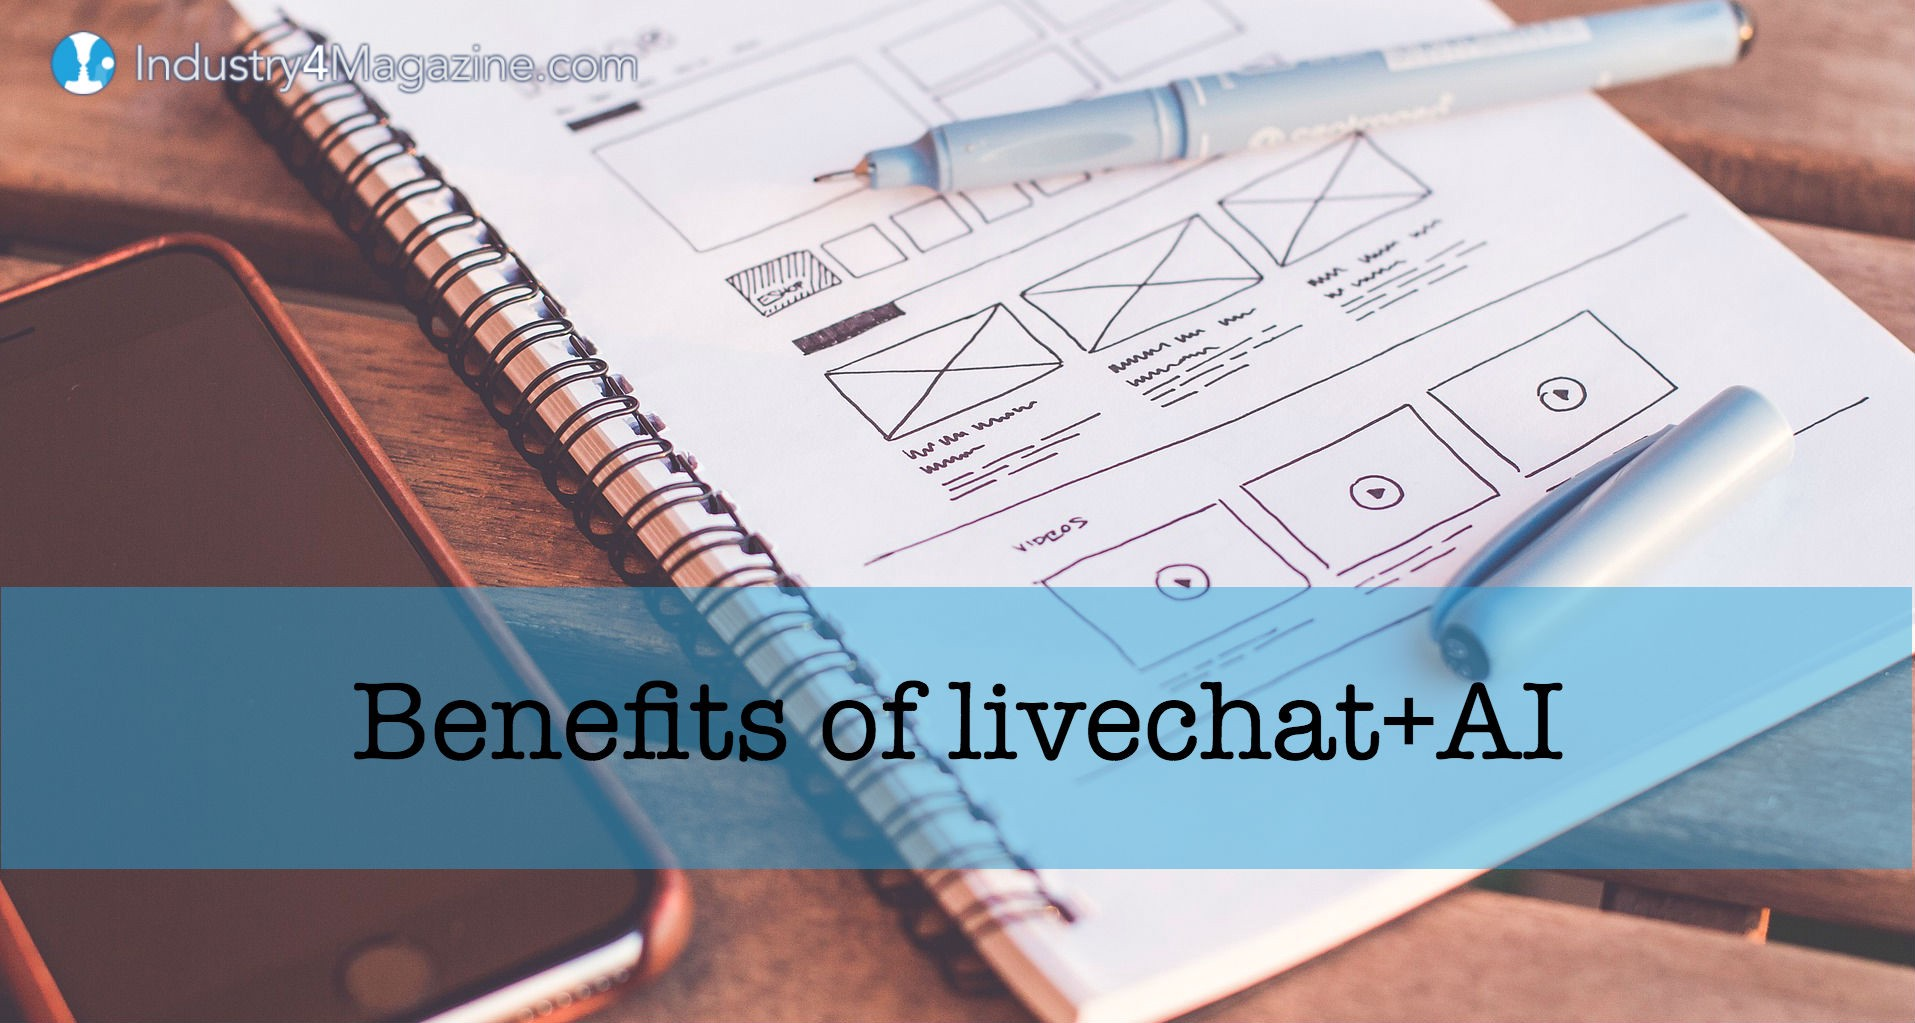 Benefits of livechat+AI